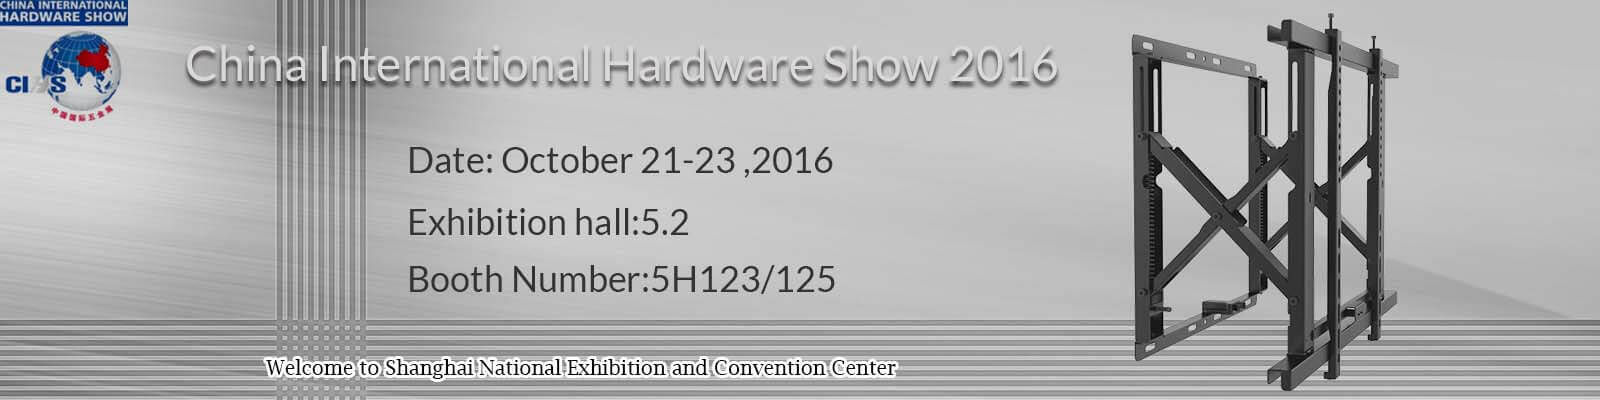 Peacemounts will attend China International Hardware Show 2016